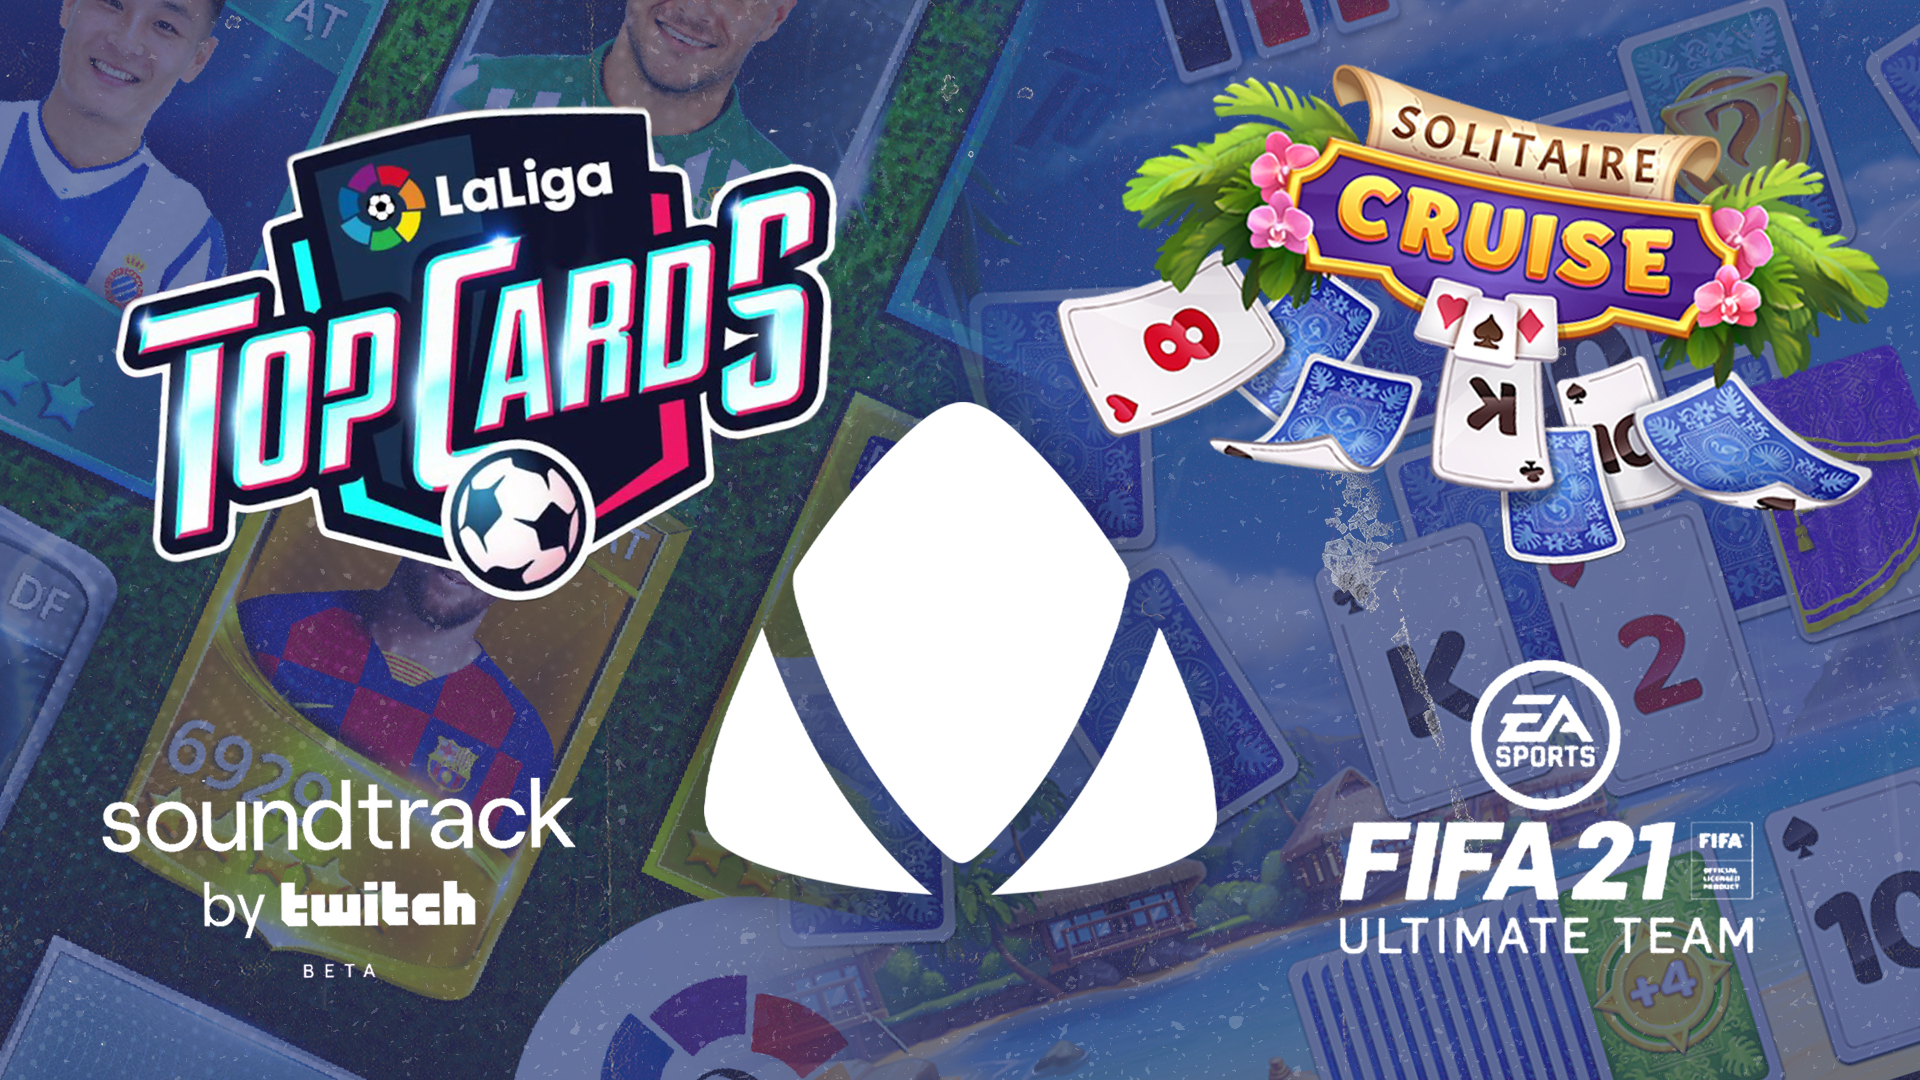 Gaming News – LaLiga blockchain, EA lootboxes, Twitch Tunes, and Solitaire Cruise